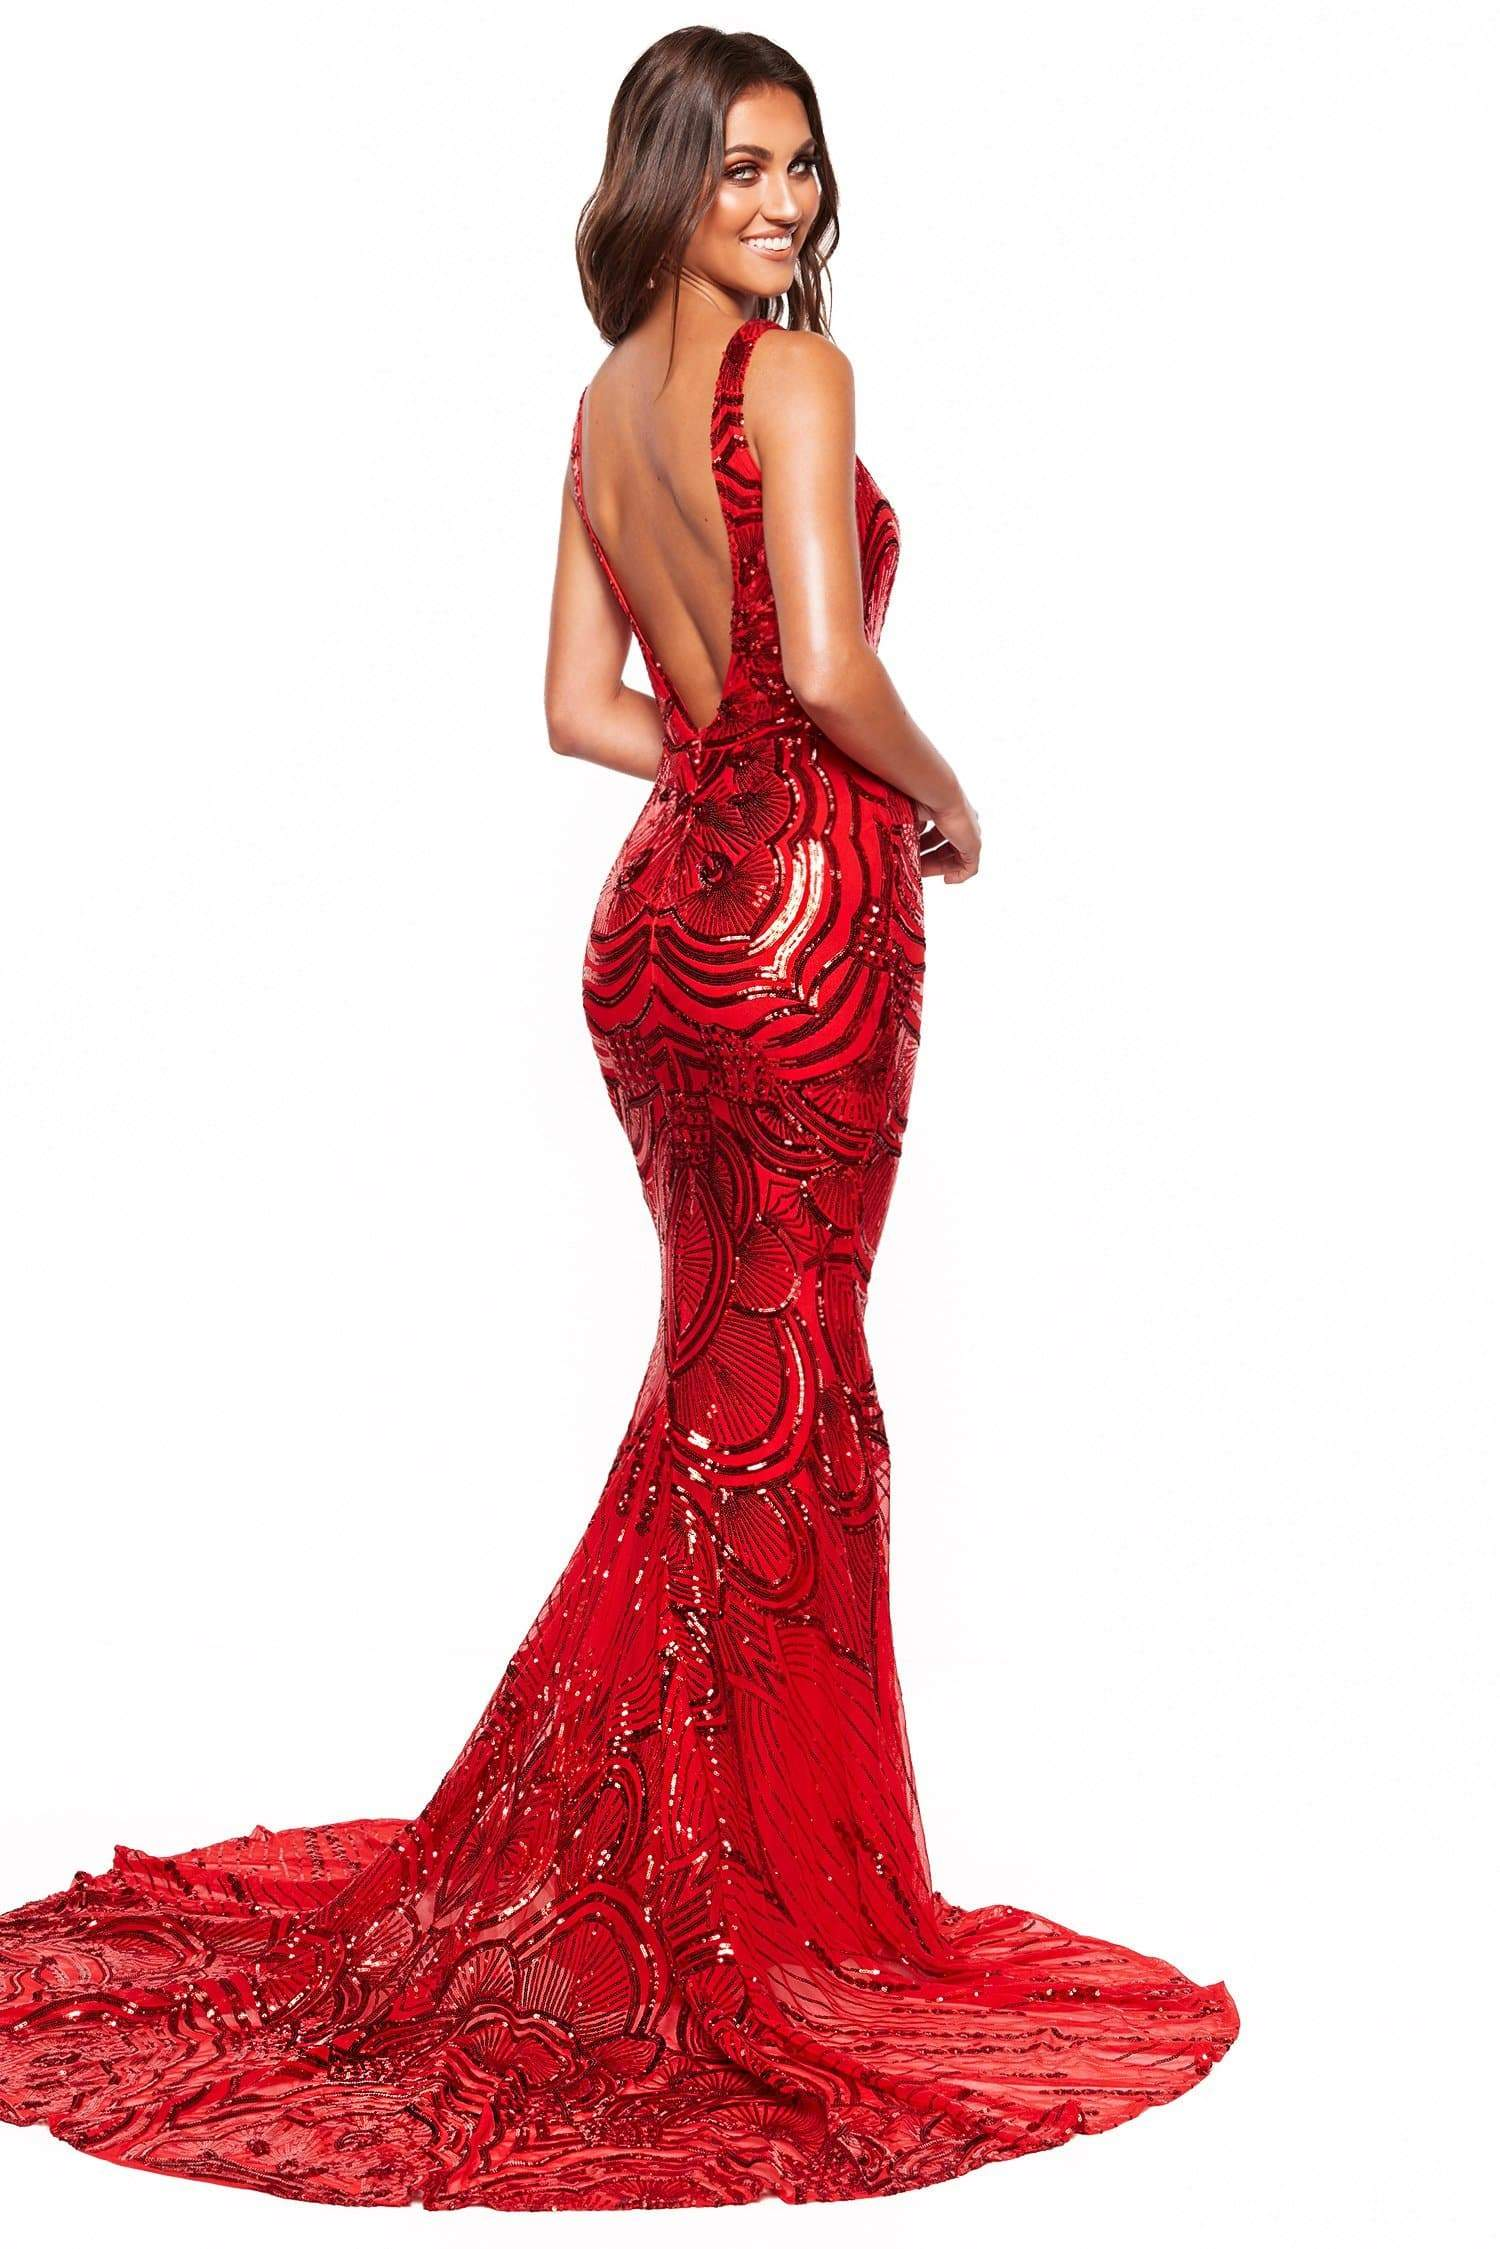 A&N Luxe Kimora - Red Sequin Mermaid Gown with V-neck & Low Back